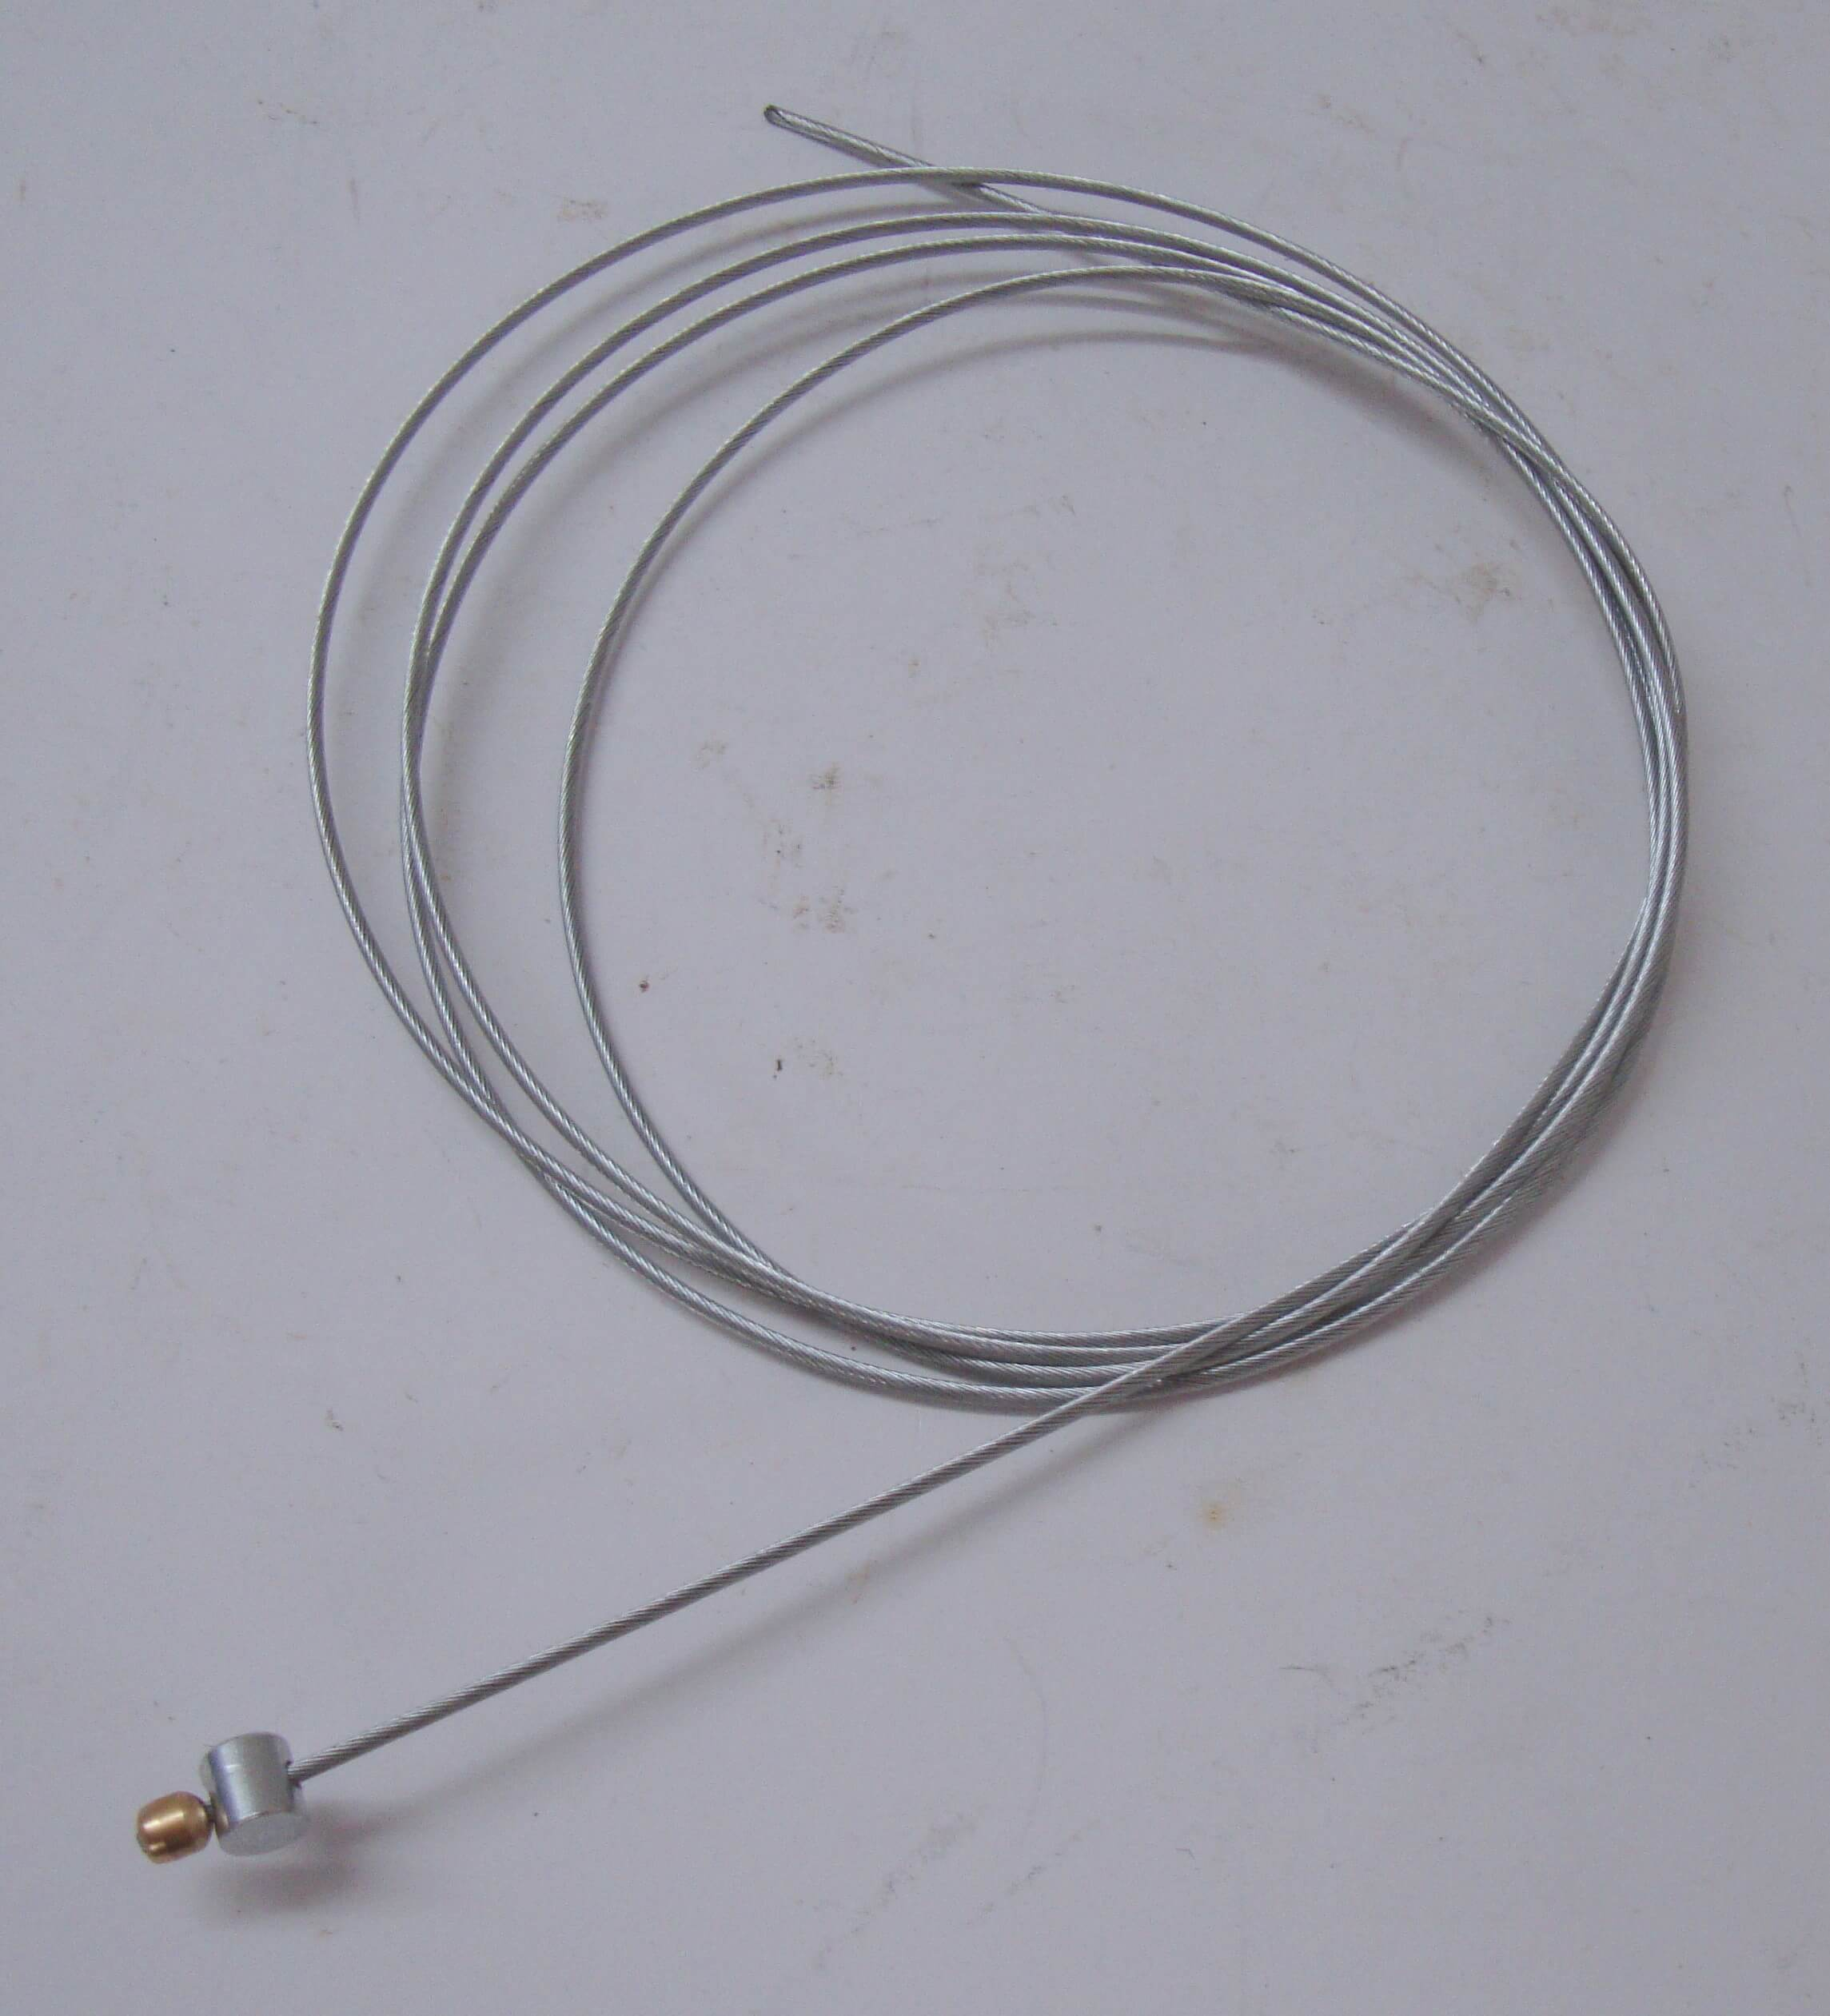 Cable for clutch control transmission, long, rotatably nipple